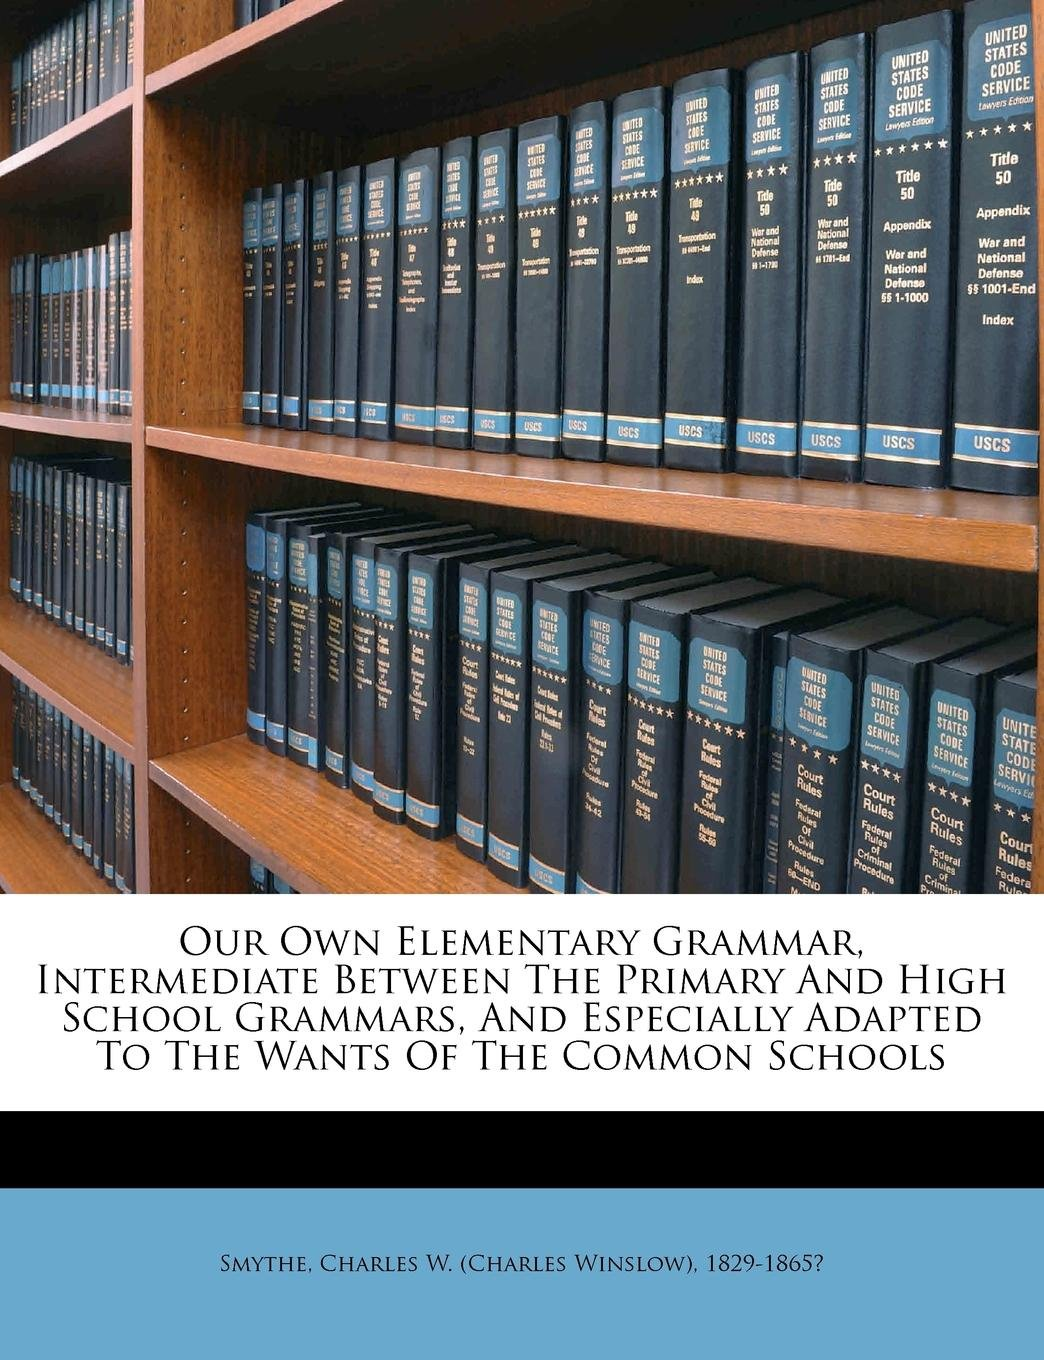 Download Our own elementary grammar, intermediate between the primary and high school grammars, and especially adapted to the wants of the common schools ebook